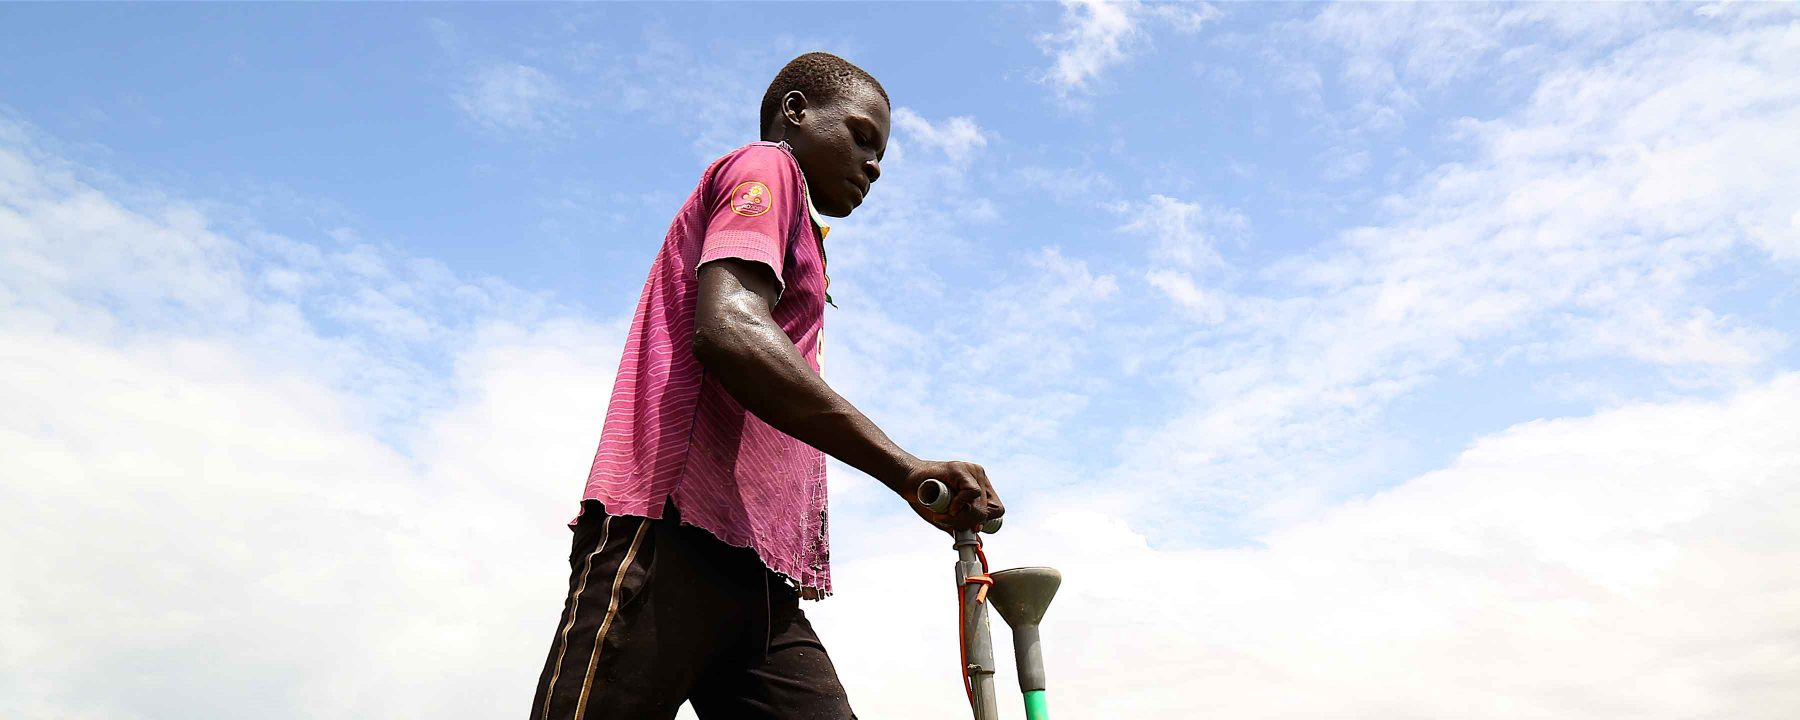 Mamadou uses the mechanical applicator to easily apply targeted fertilizer in his father's rice field in Mali.